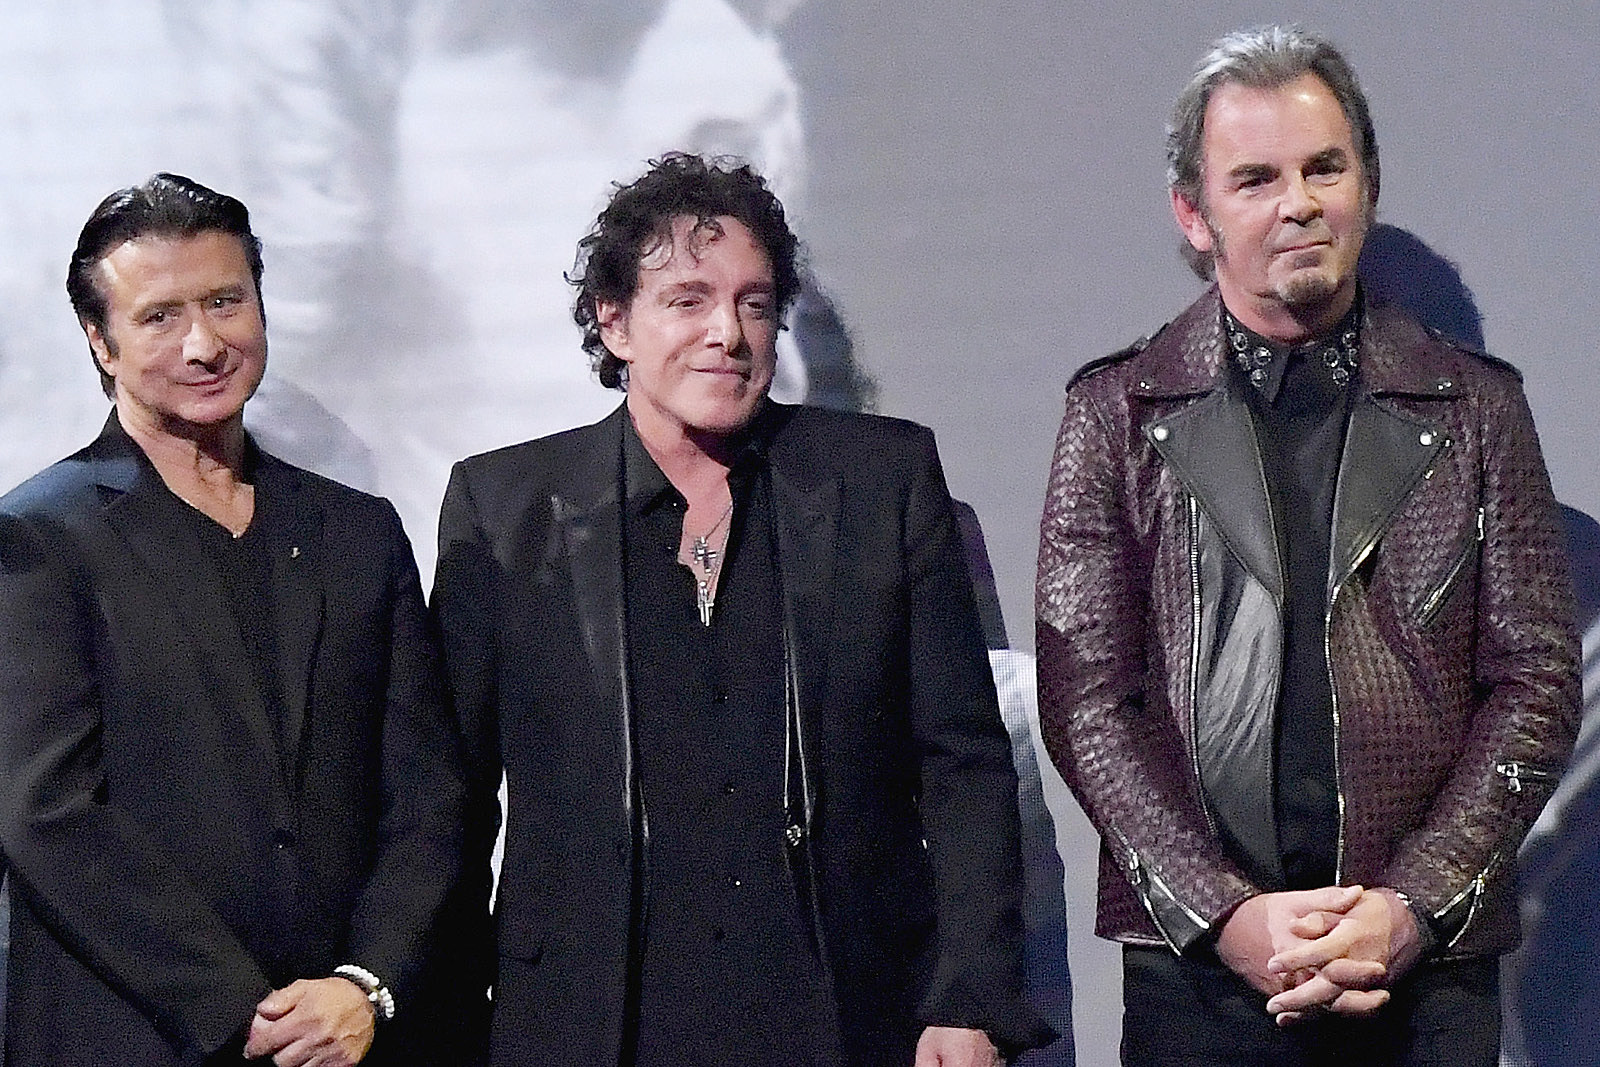 Jonathan Cain: Steve Perry Pretty Much Said 'Lose My Number'